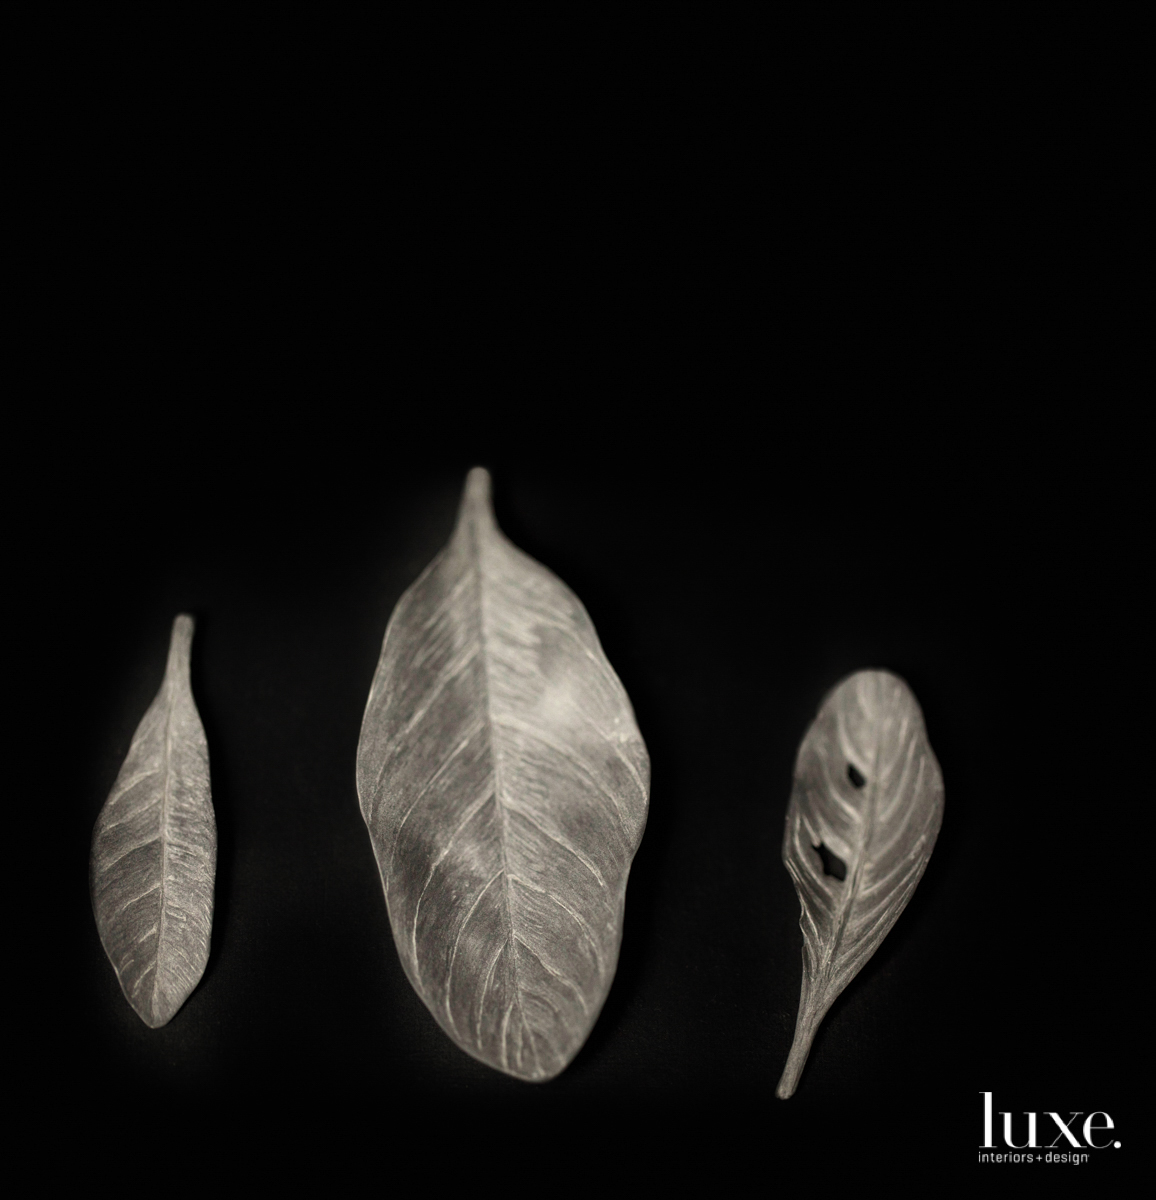 three realistic sculptures of leaves on a pure black background